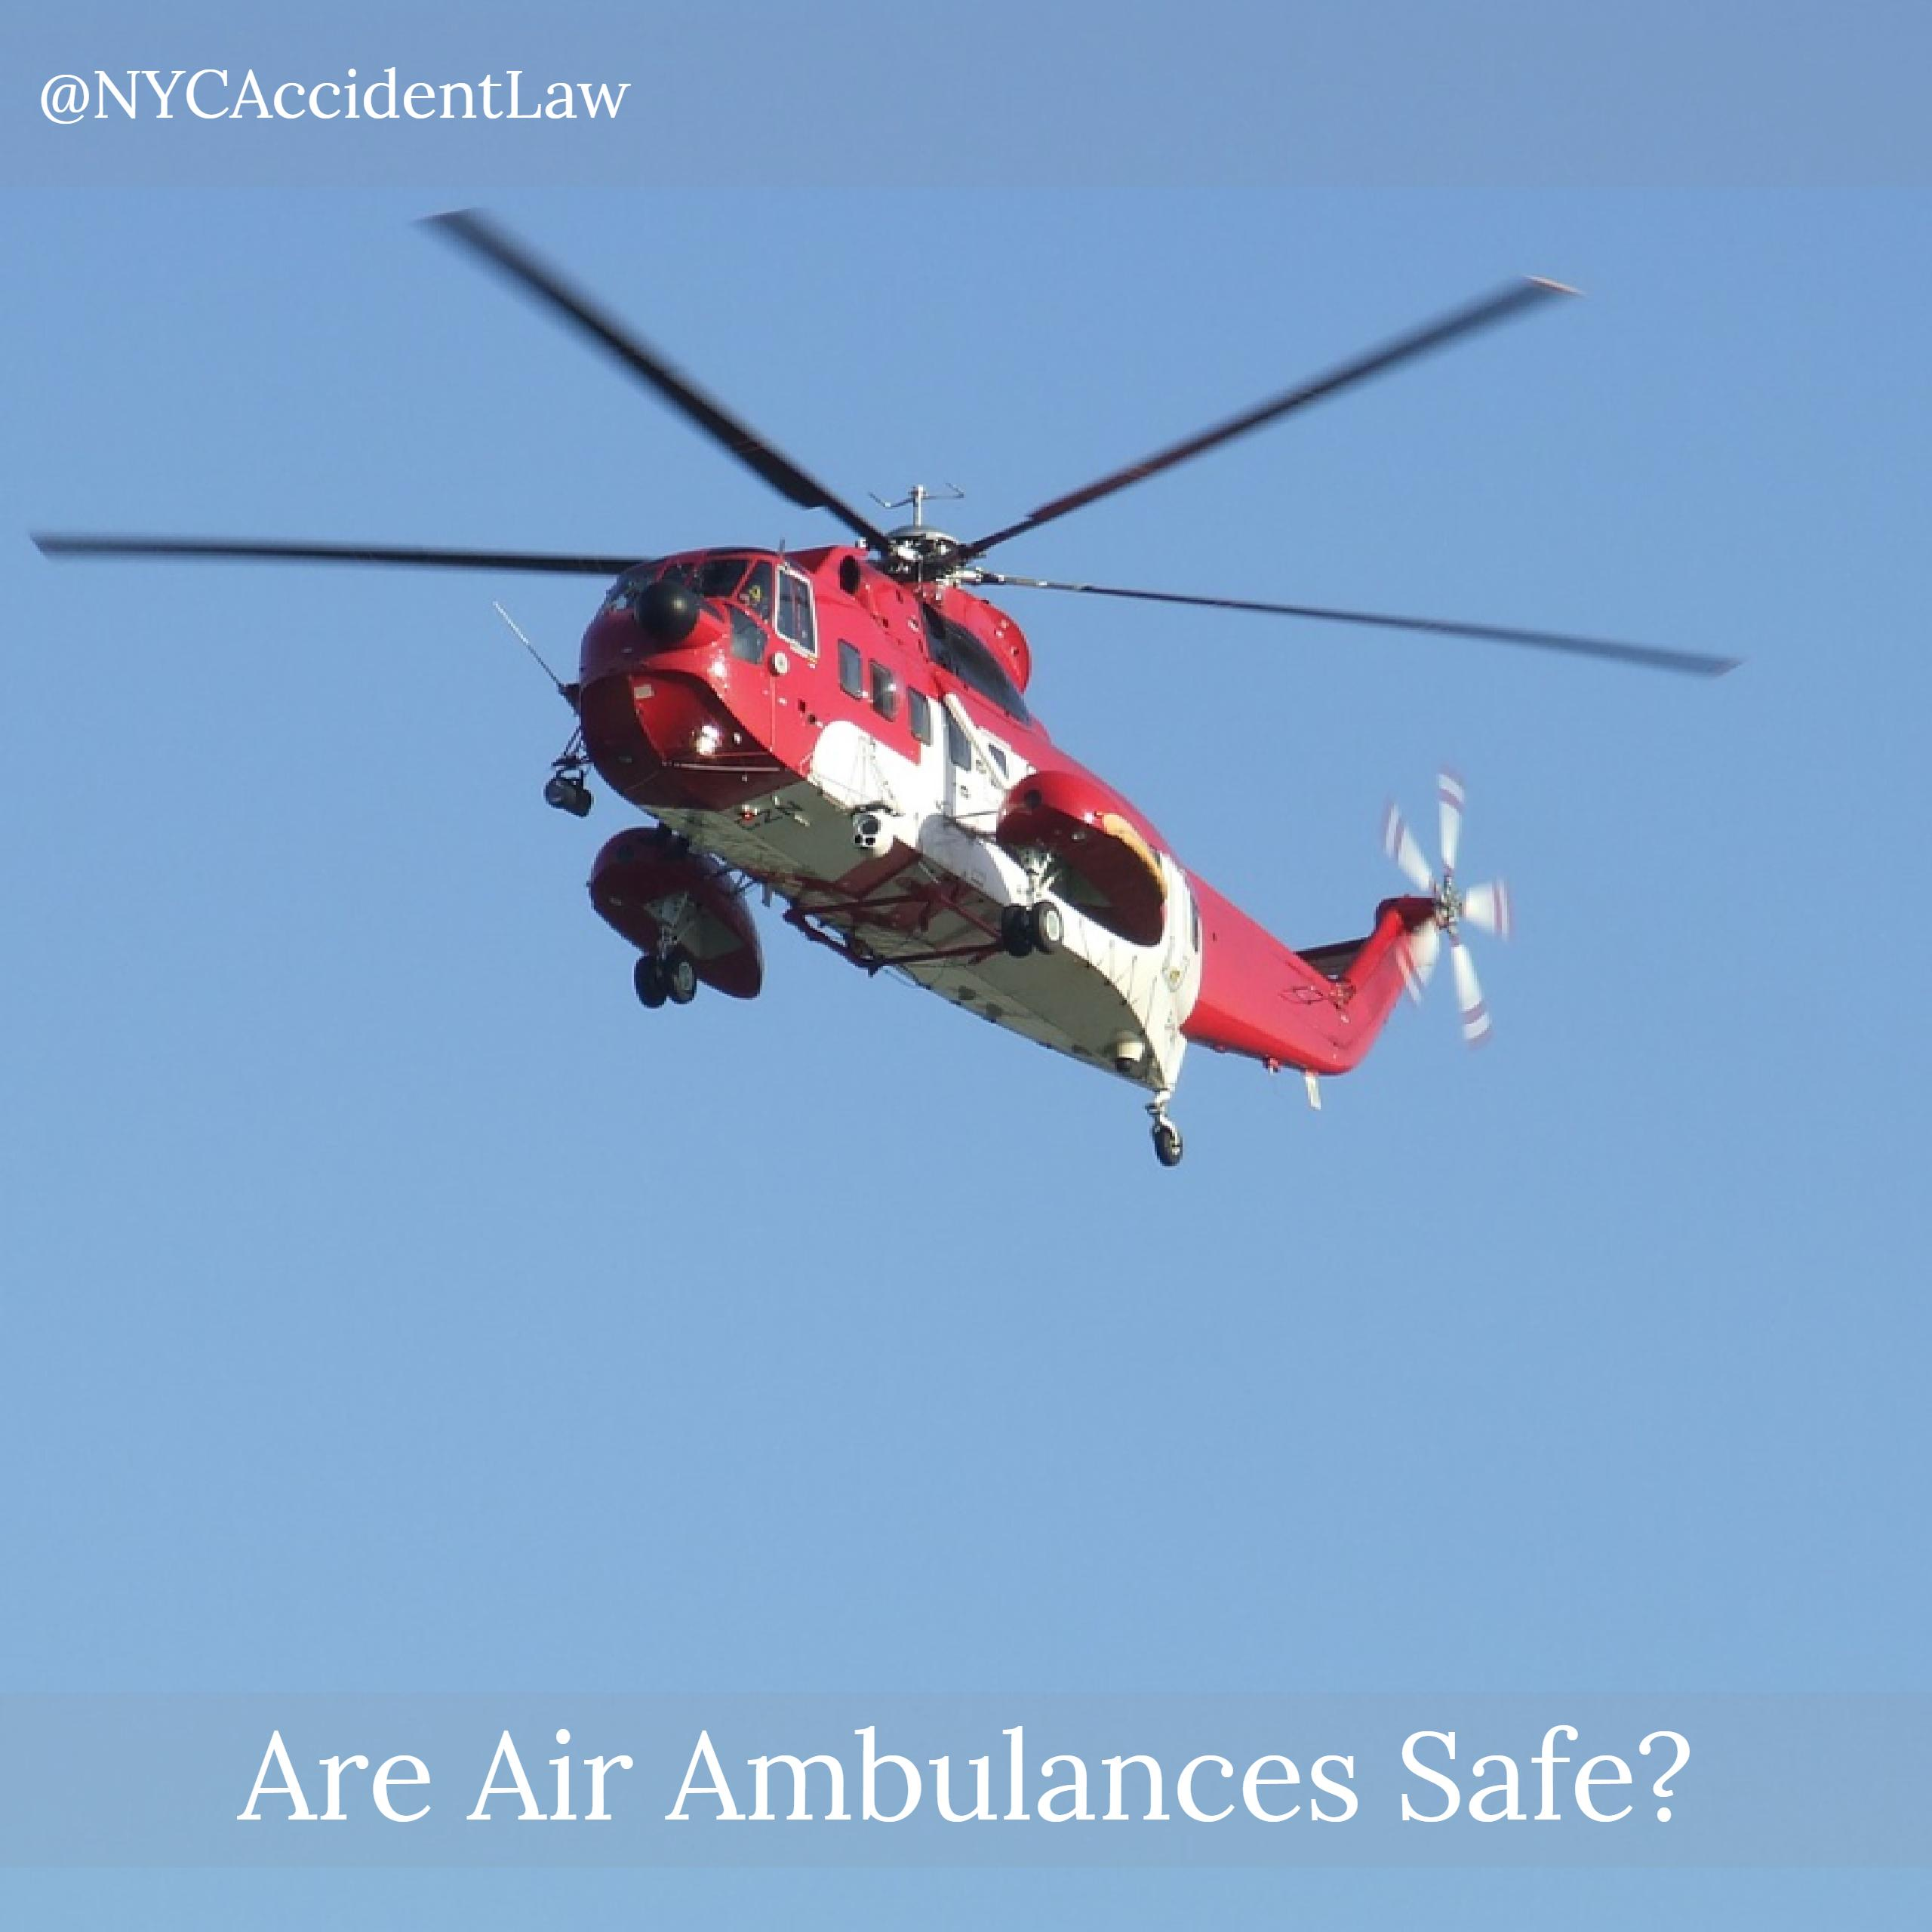 Are Air Ambulances Safe Aviation accident lawyer Jonathan C. Reiter